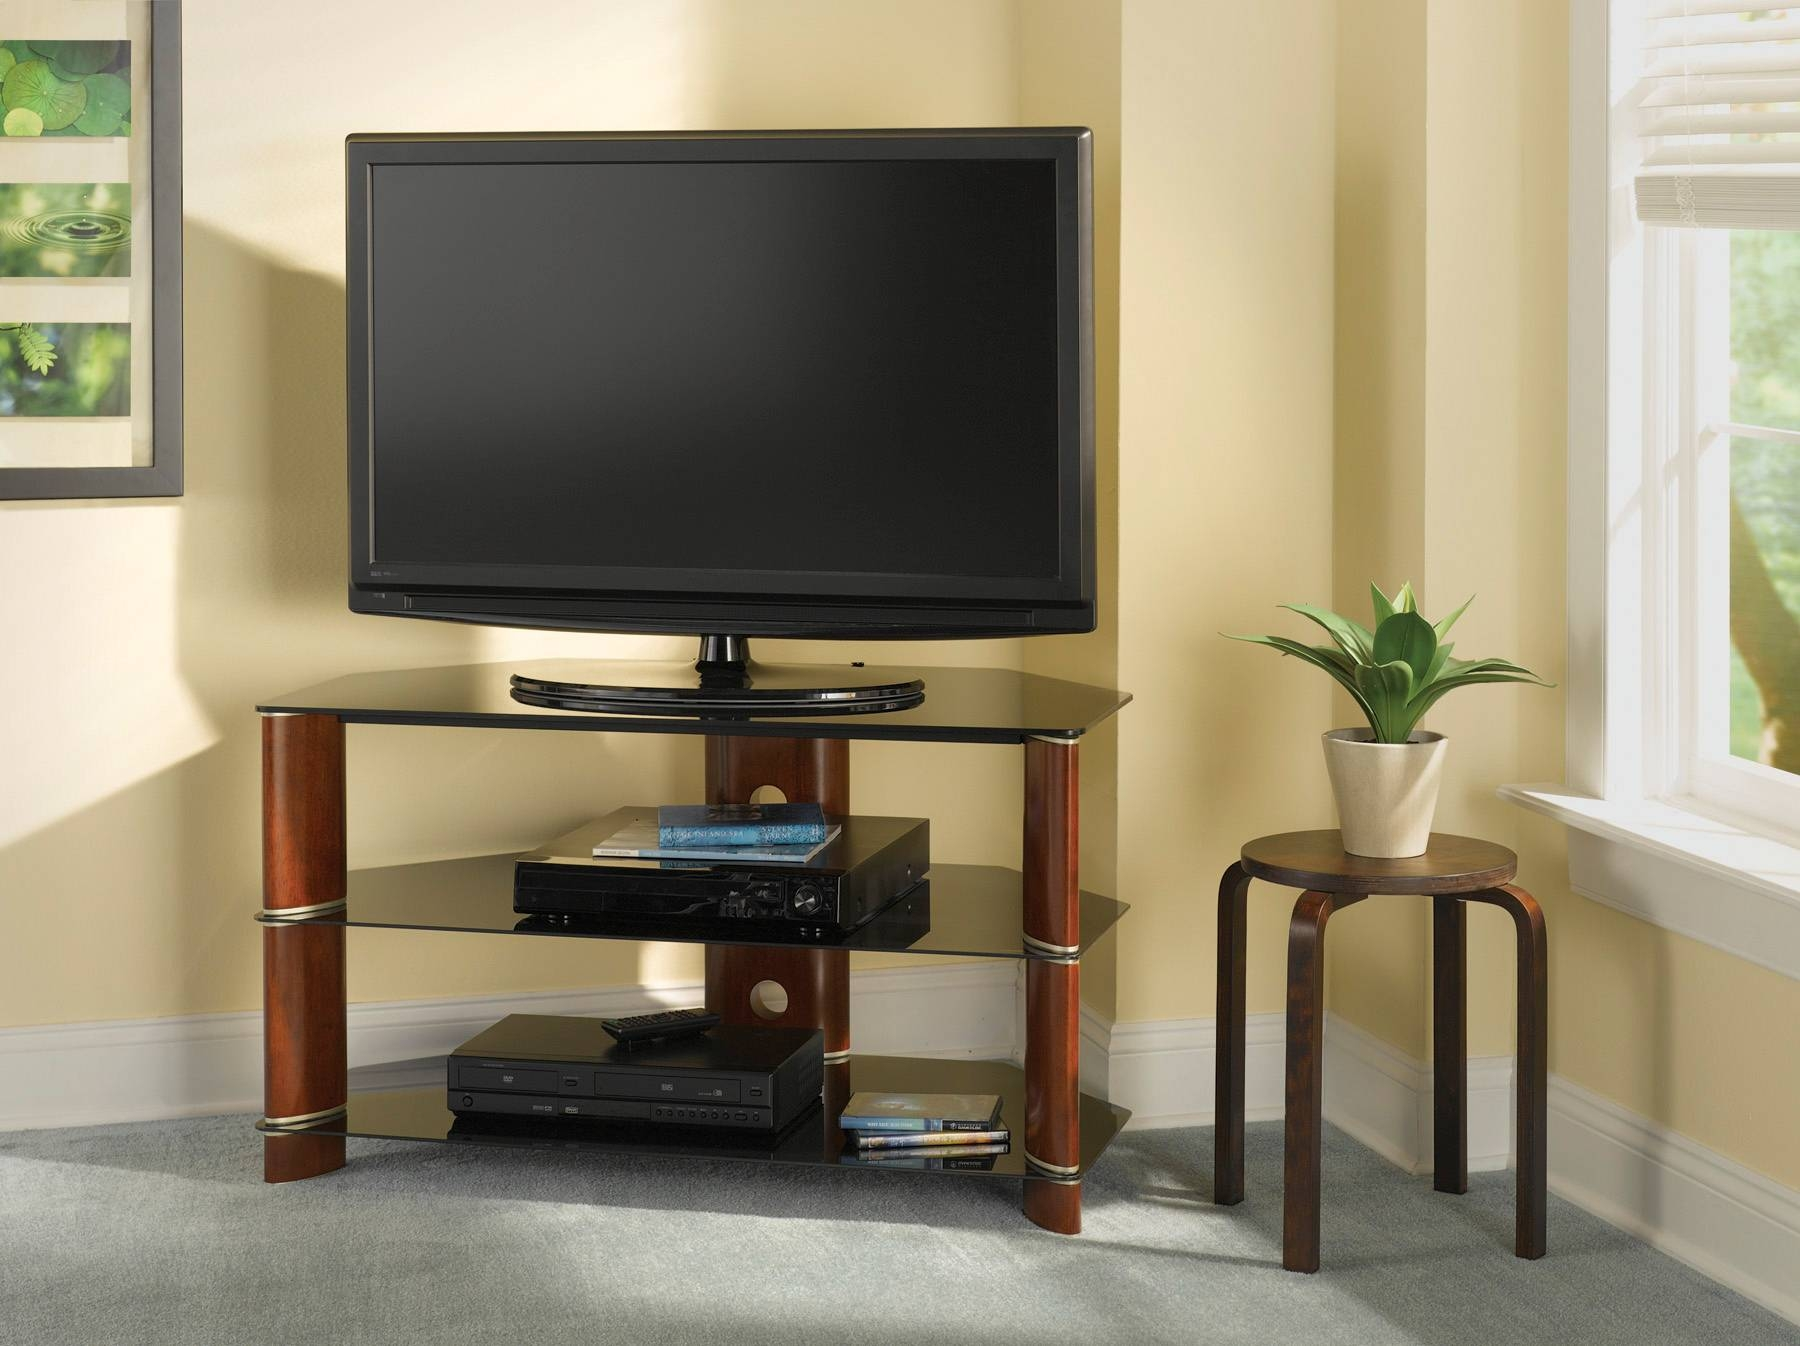 Corner Tv Stands For Flat Screen Tv – Furniture Depot within Triangular Tv Stand (Image 3 of 15)